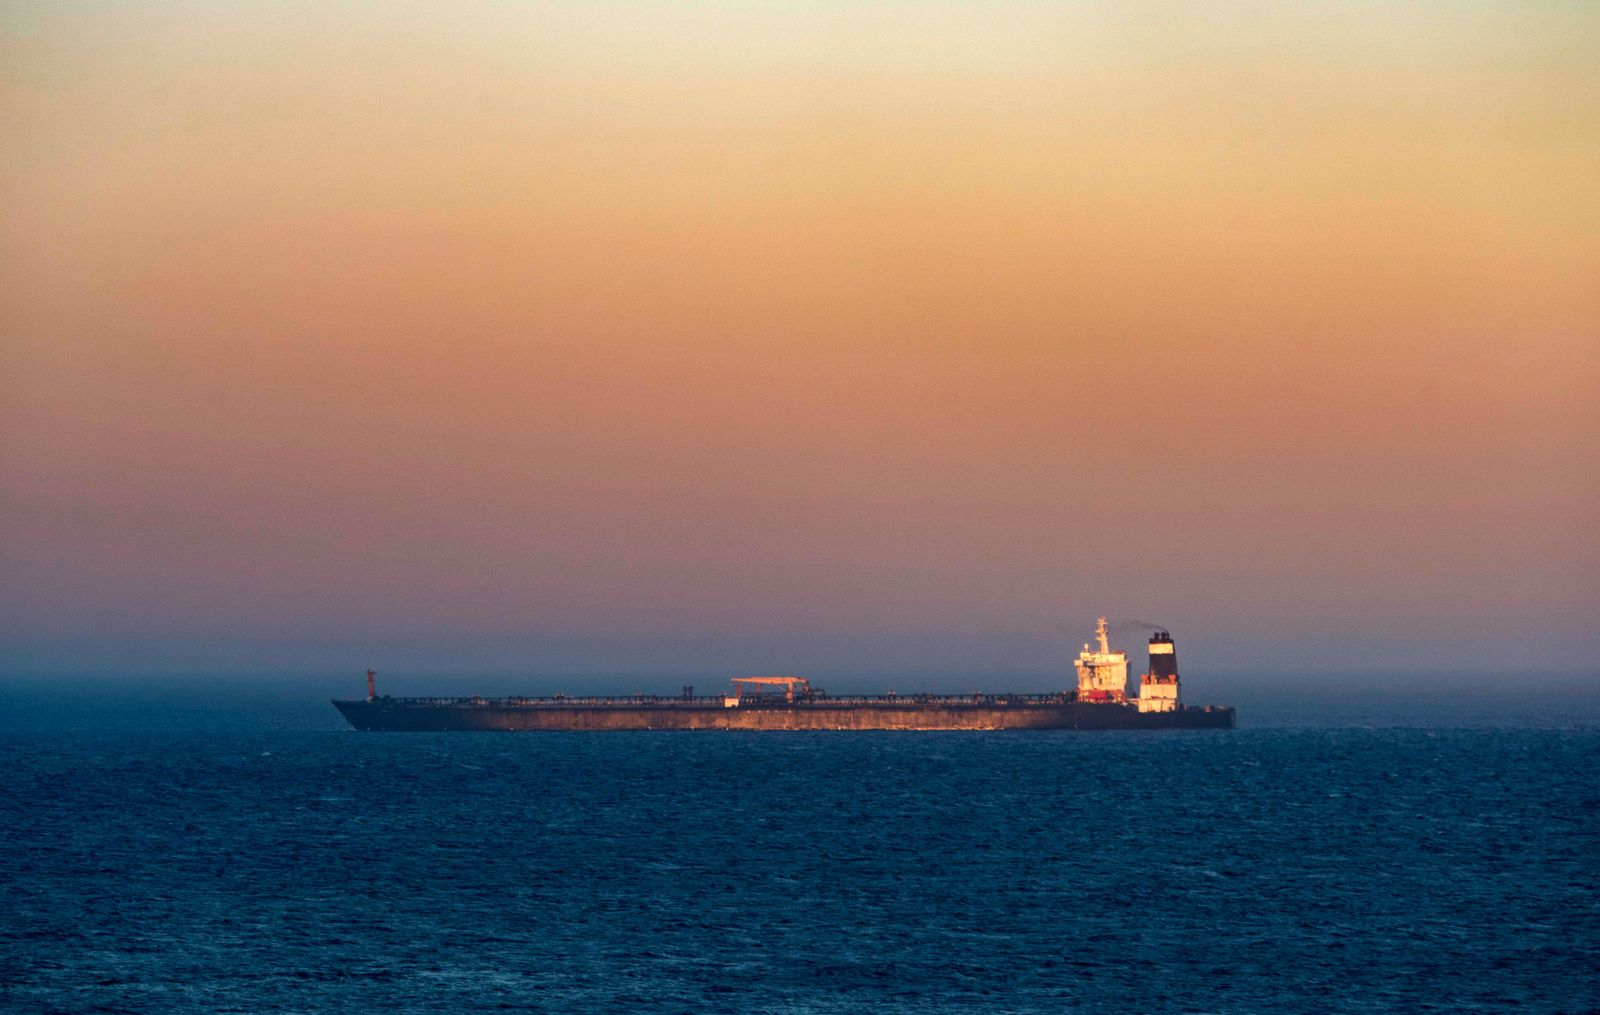 A supertanker hosting an Iranian flag is seen on the water in the British territory of Gibraltar, Sunday, Aug. 18, 2019. . (AP Photo/Marcos Moreno)